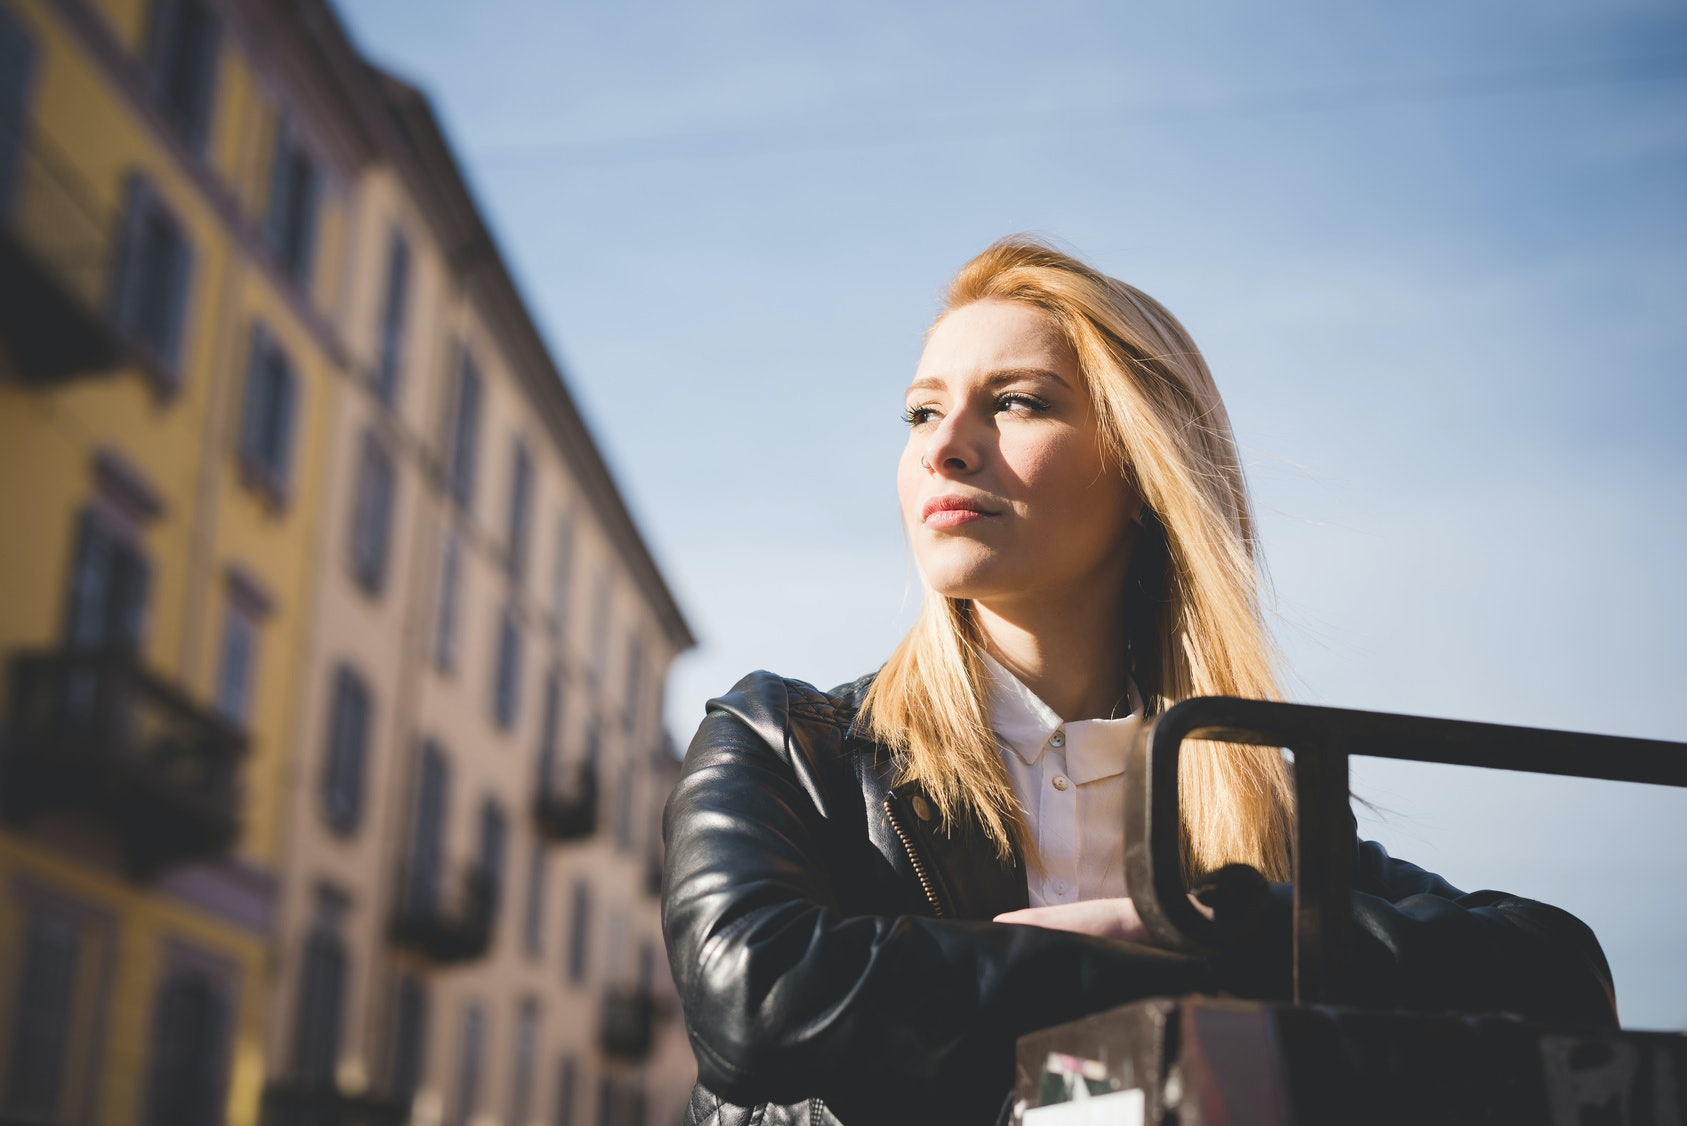 Dealing with dating burnout